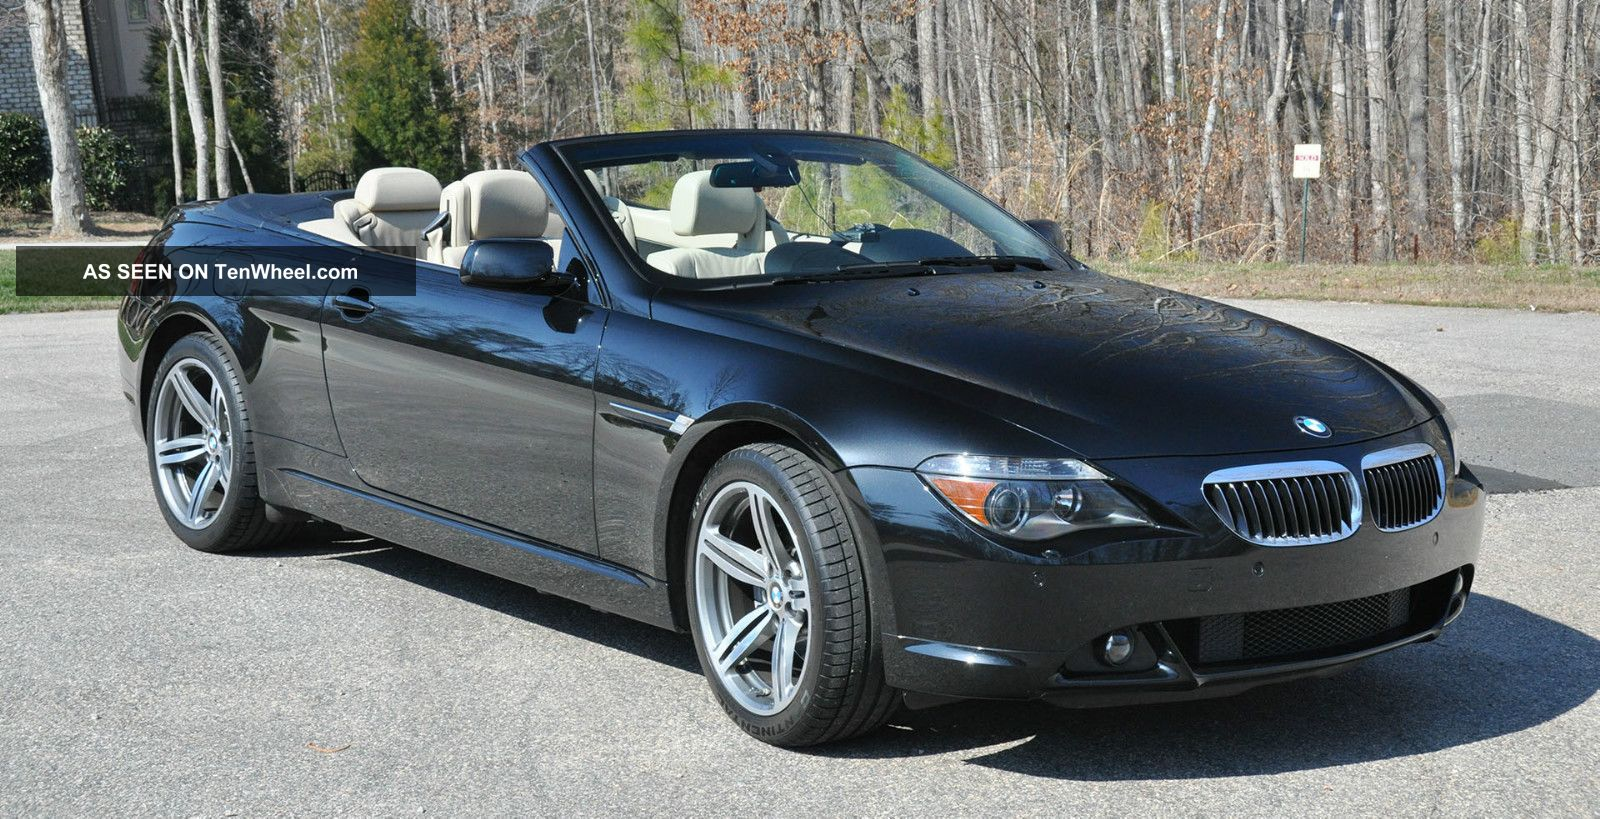 2006 bmw 650i convertible 6 sp 51900 mi exc condition. Black Bedroom Furniture Sets. Home Design Ideas